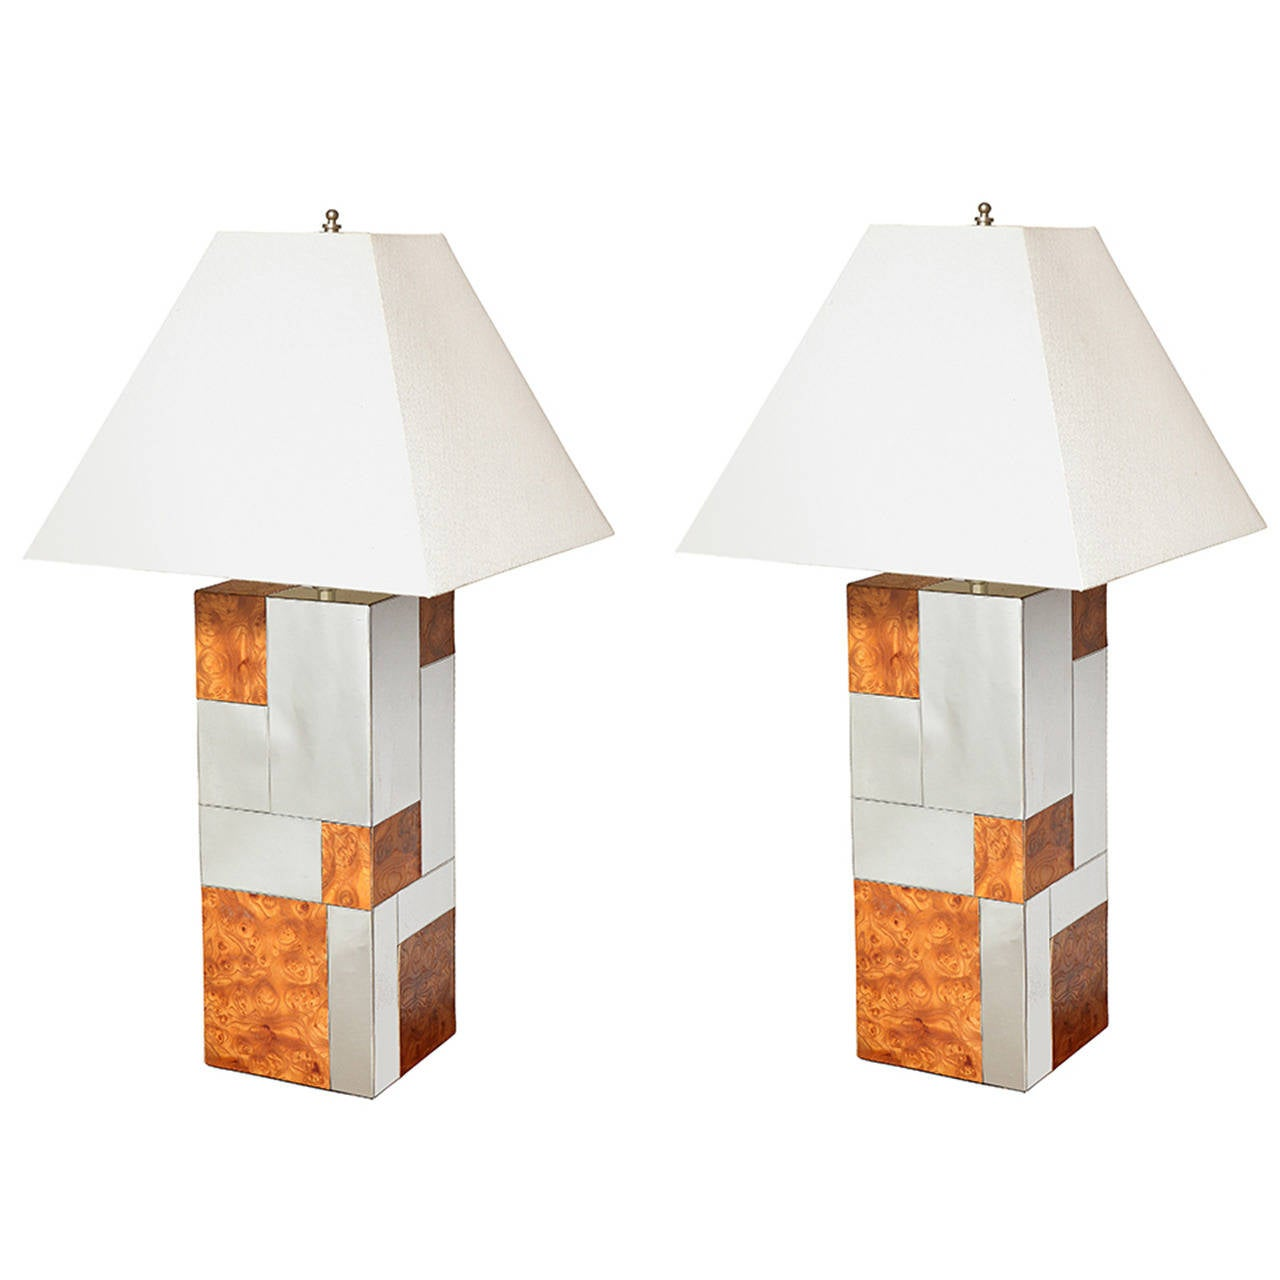 A Pair of Mid-Century Modern Table Lamps by Paul Evans